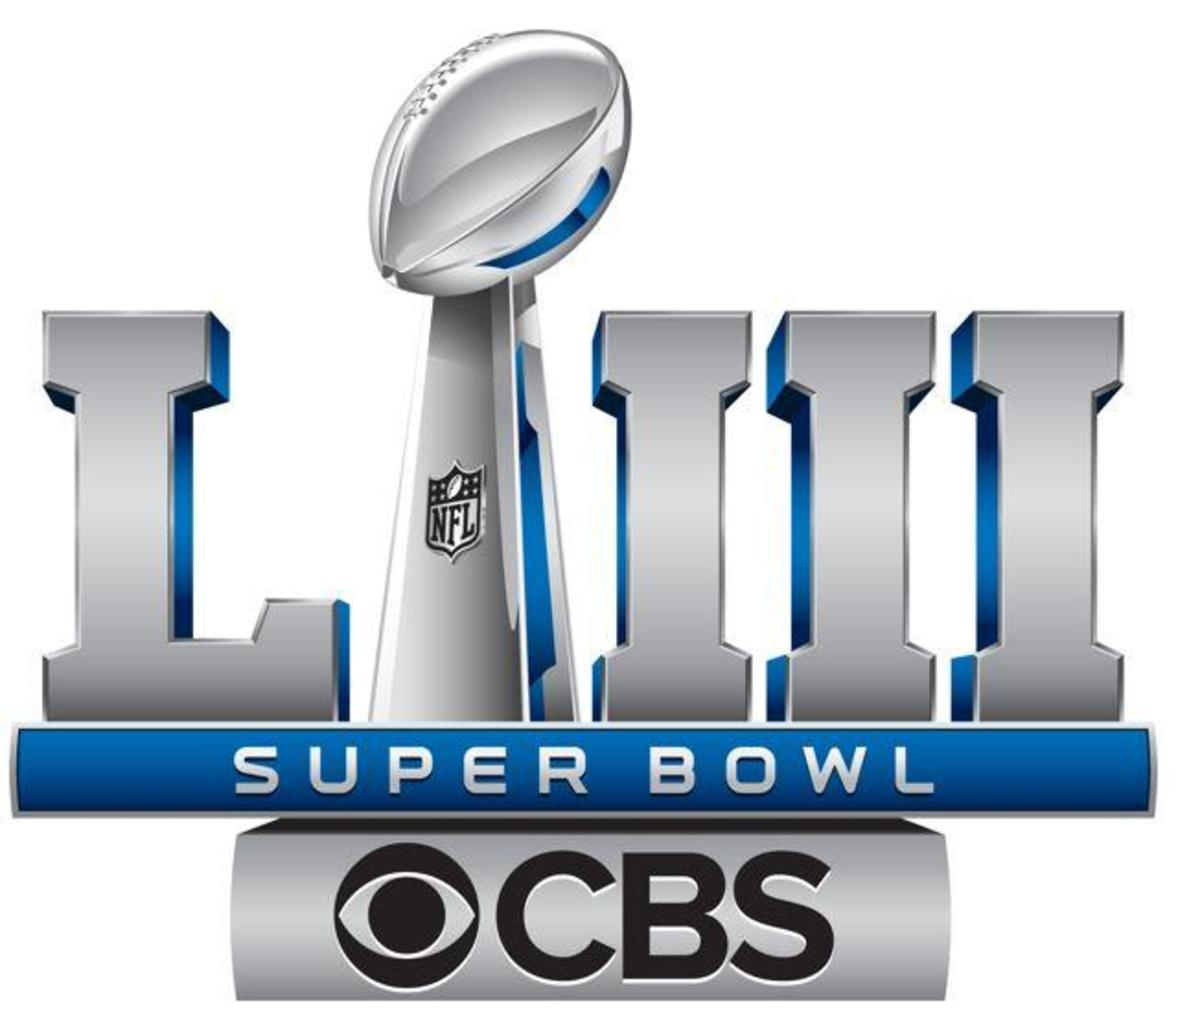 12M More Viewers Saw Super Bowl Out of Home.